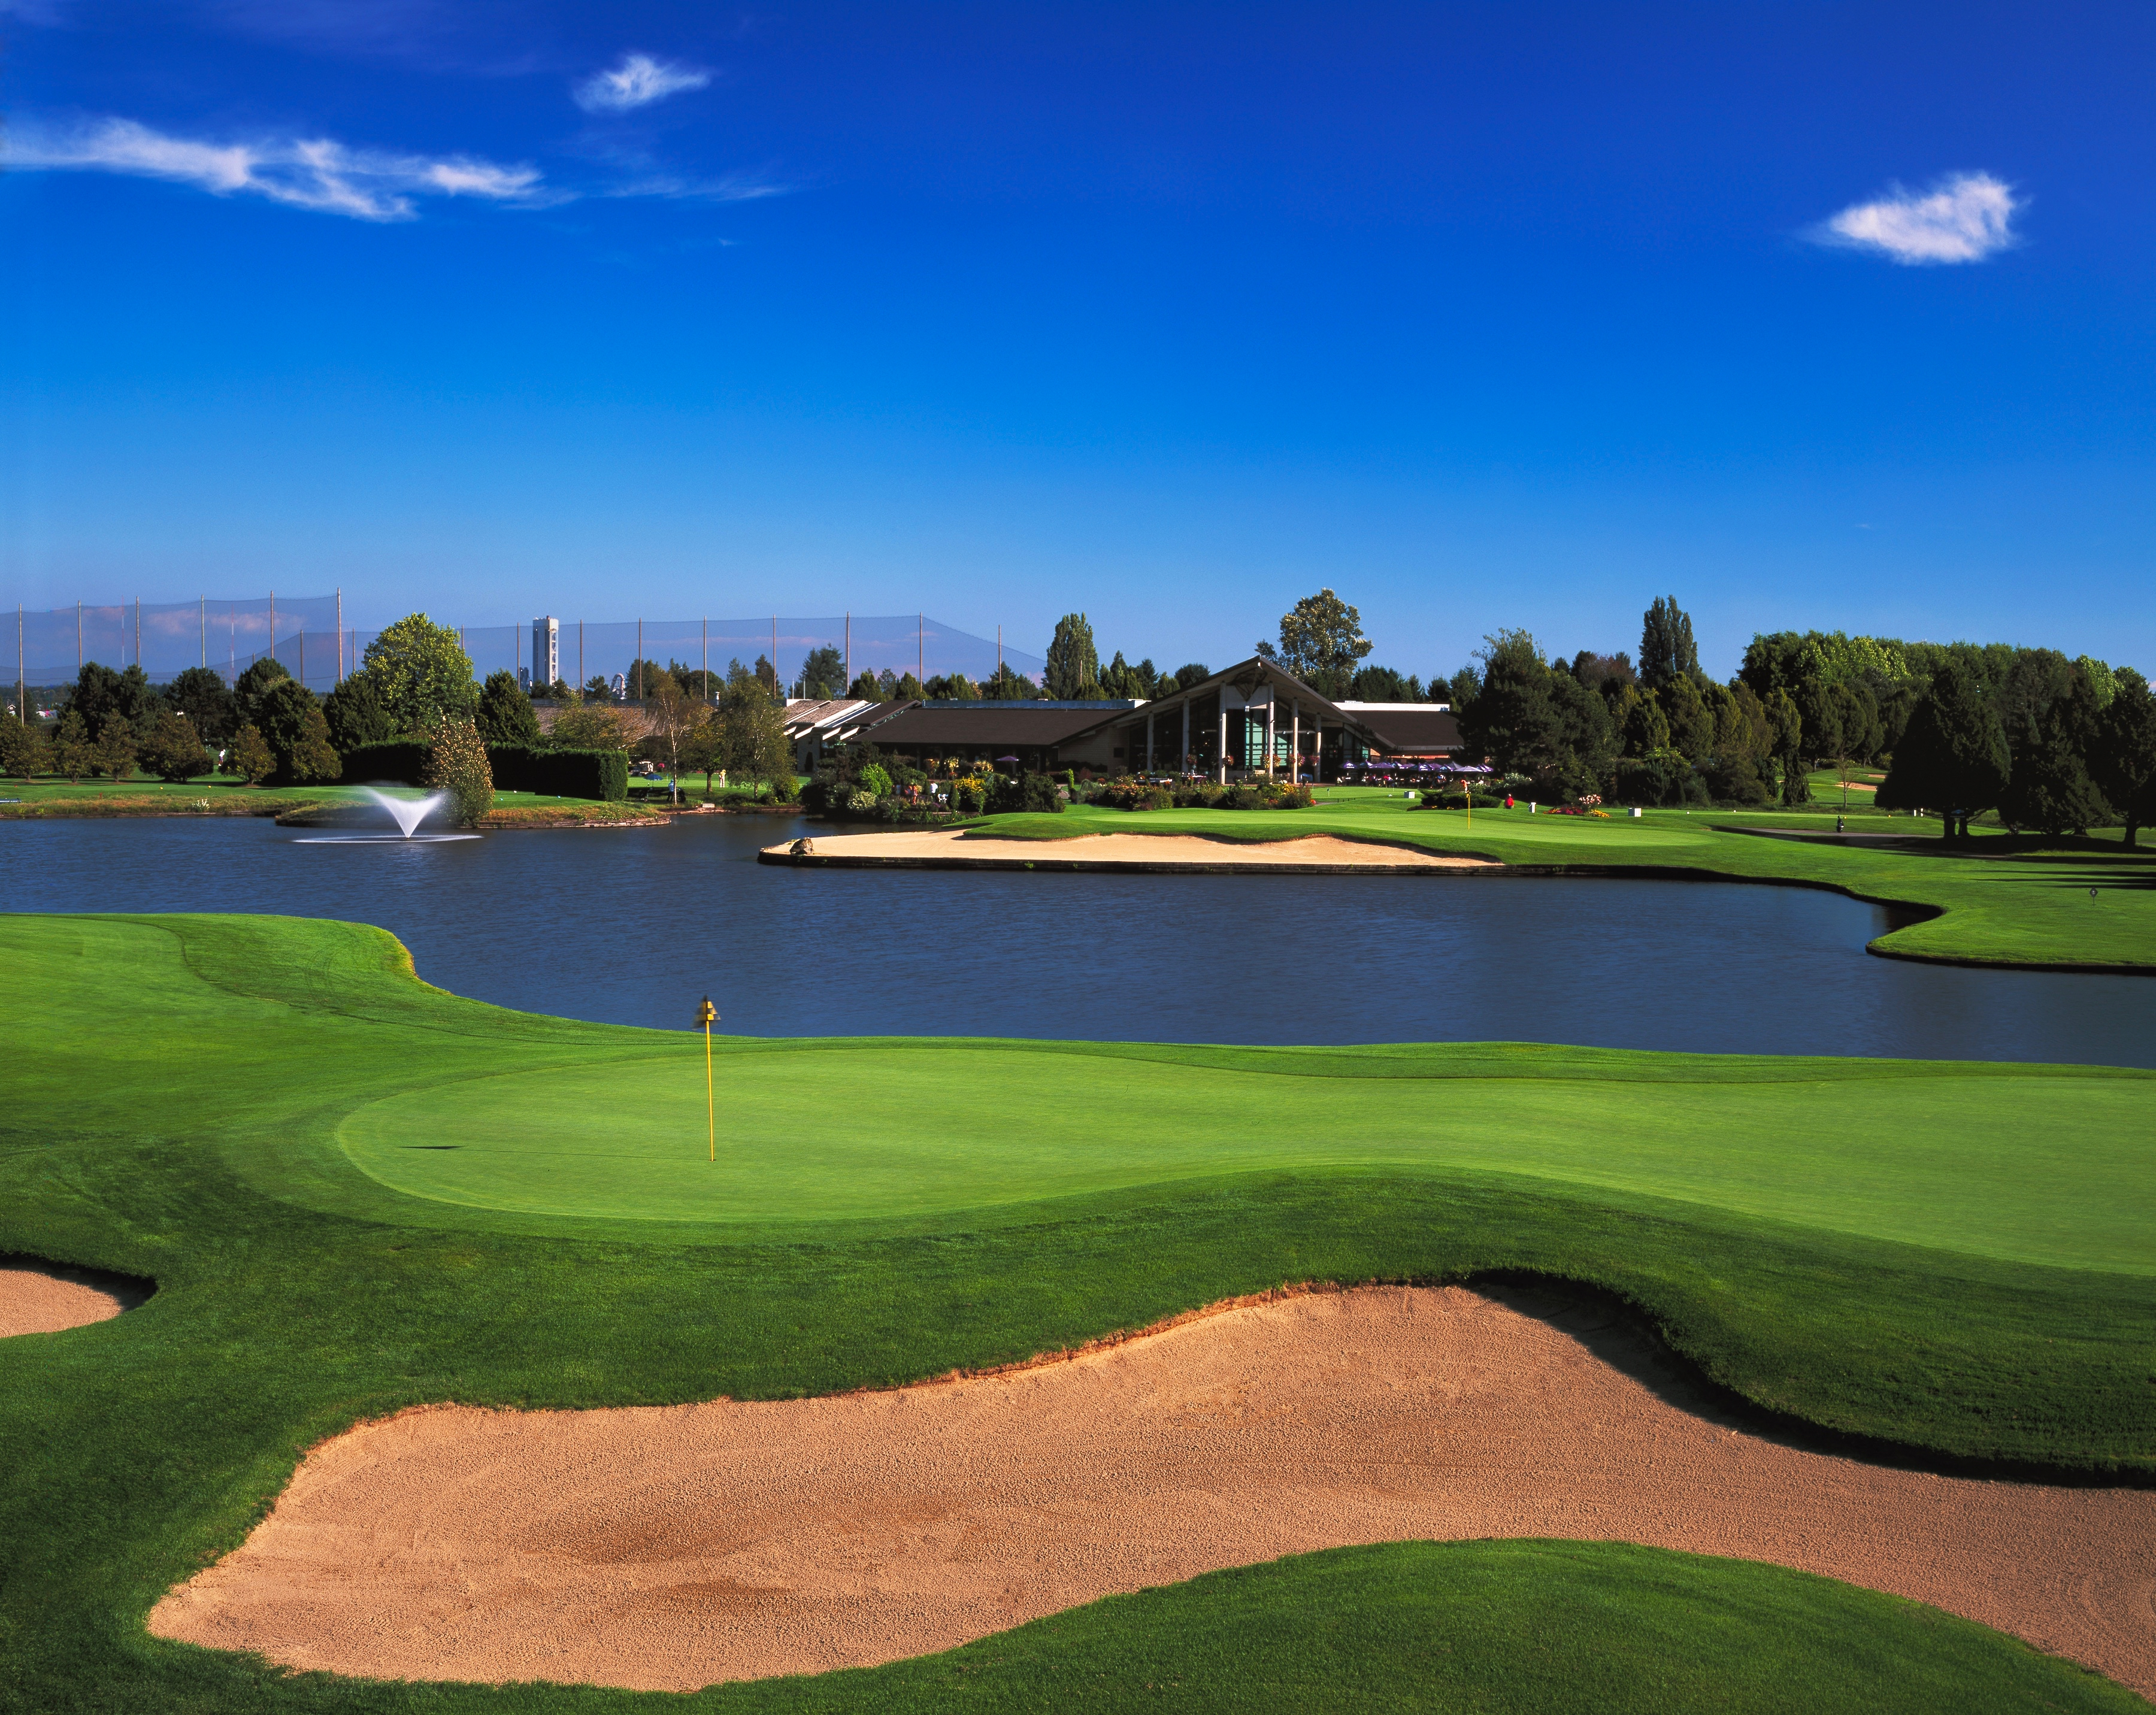 mayfair lakes golf club photo gallery